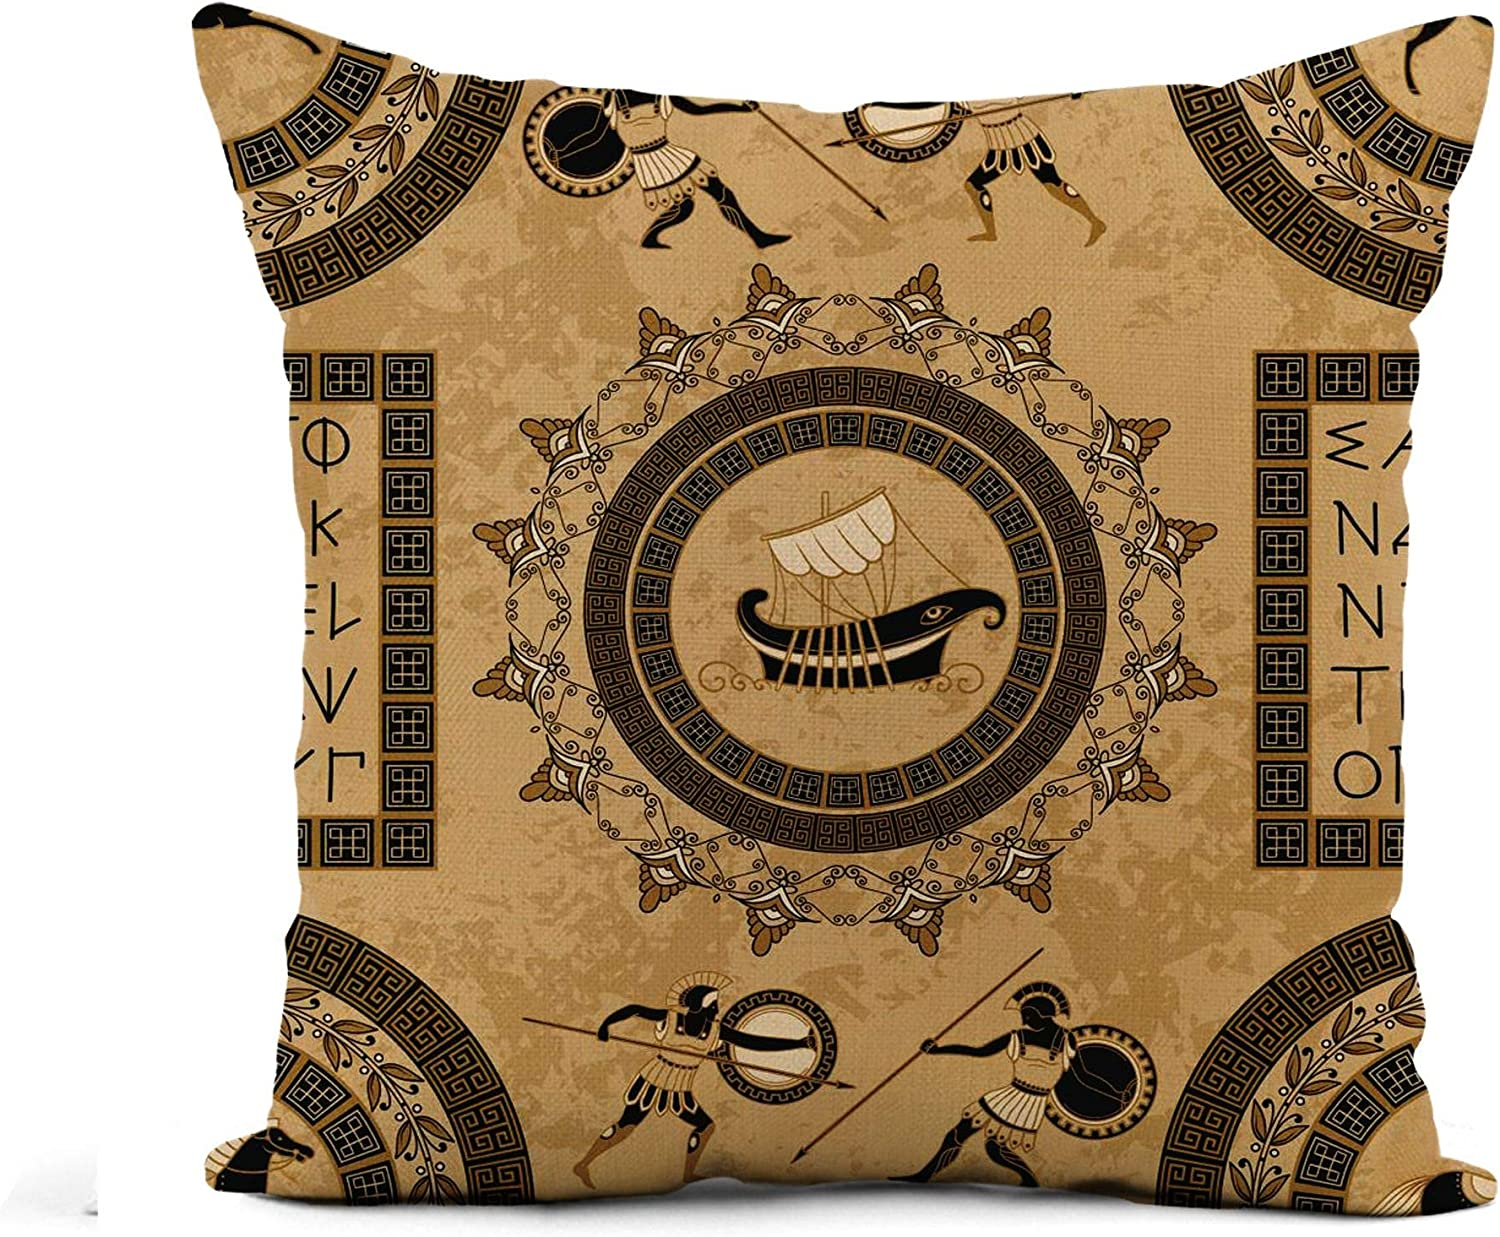 Amazon Com Awowee Flax Throw Pillow Cover Ancient Greek Letters Ships Horses Fighting People And Traditional 18x18 Inches Pillowcase Home Decor Square Cotton Linen Pillow Case Cushion Cover Home Kitchen